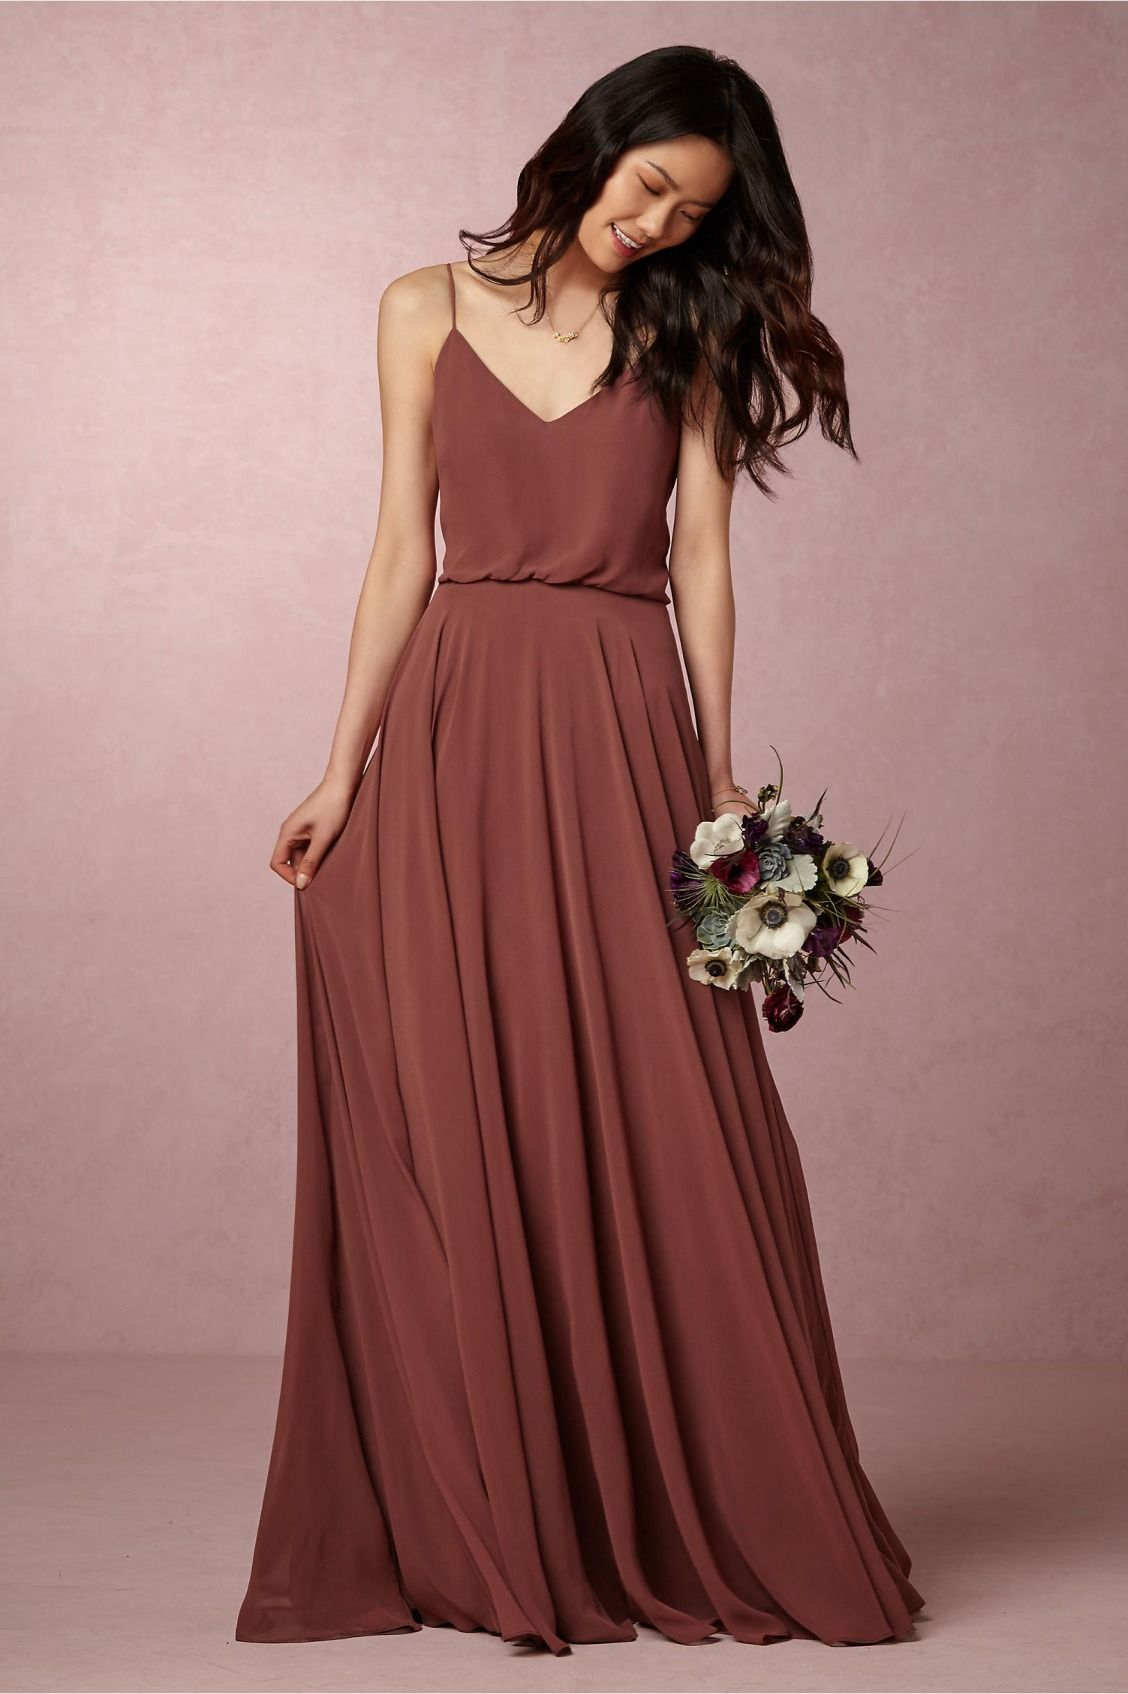 Boho bridesmaid dresses maxi dresses bohemian and boho airy chiffon bridesmaid dress inesse dress in cinnamon rose from bhldn ombrellifo Image collections